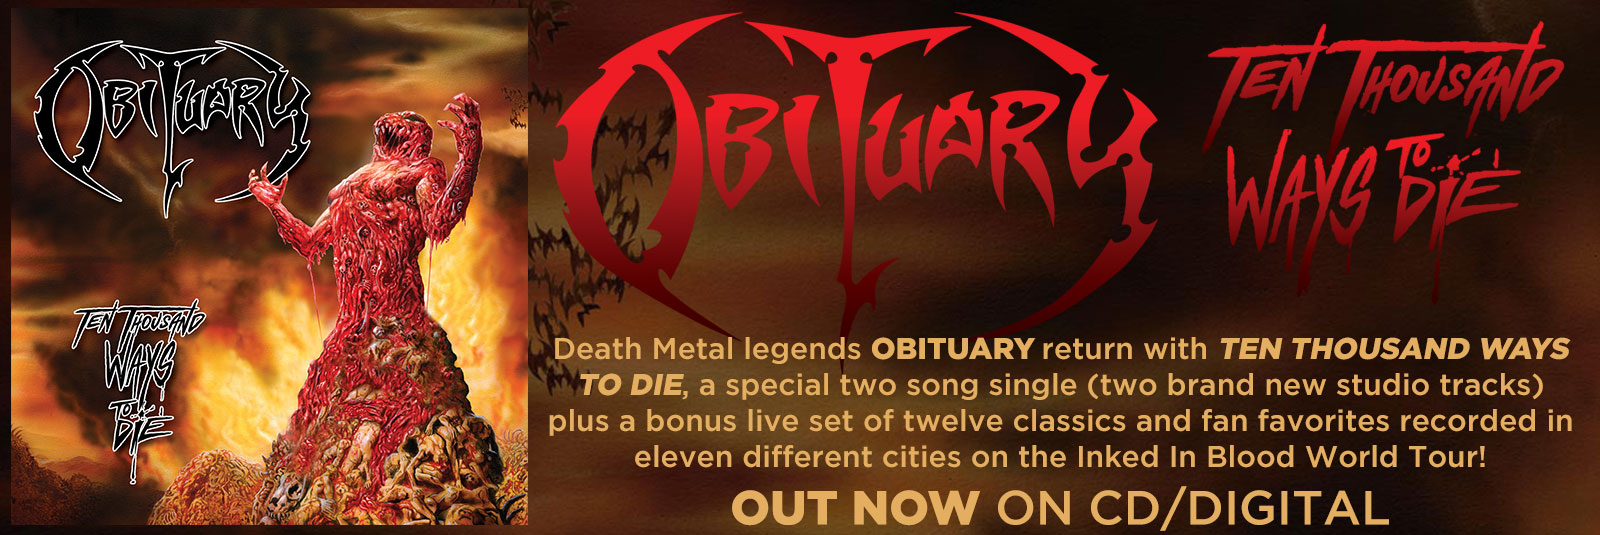 http://www.relapse.com/obituary-ten-thousand-ways-to-die/